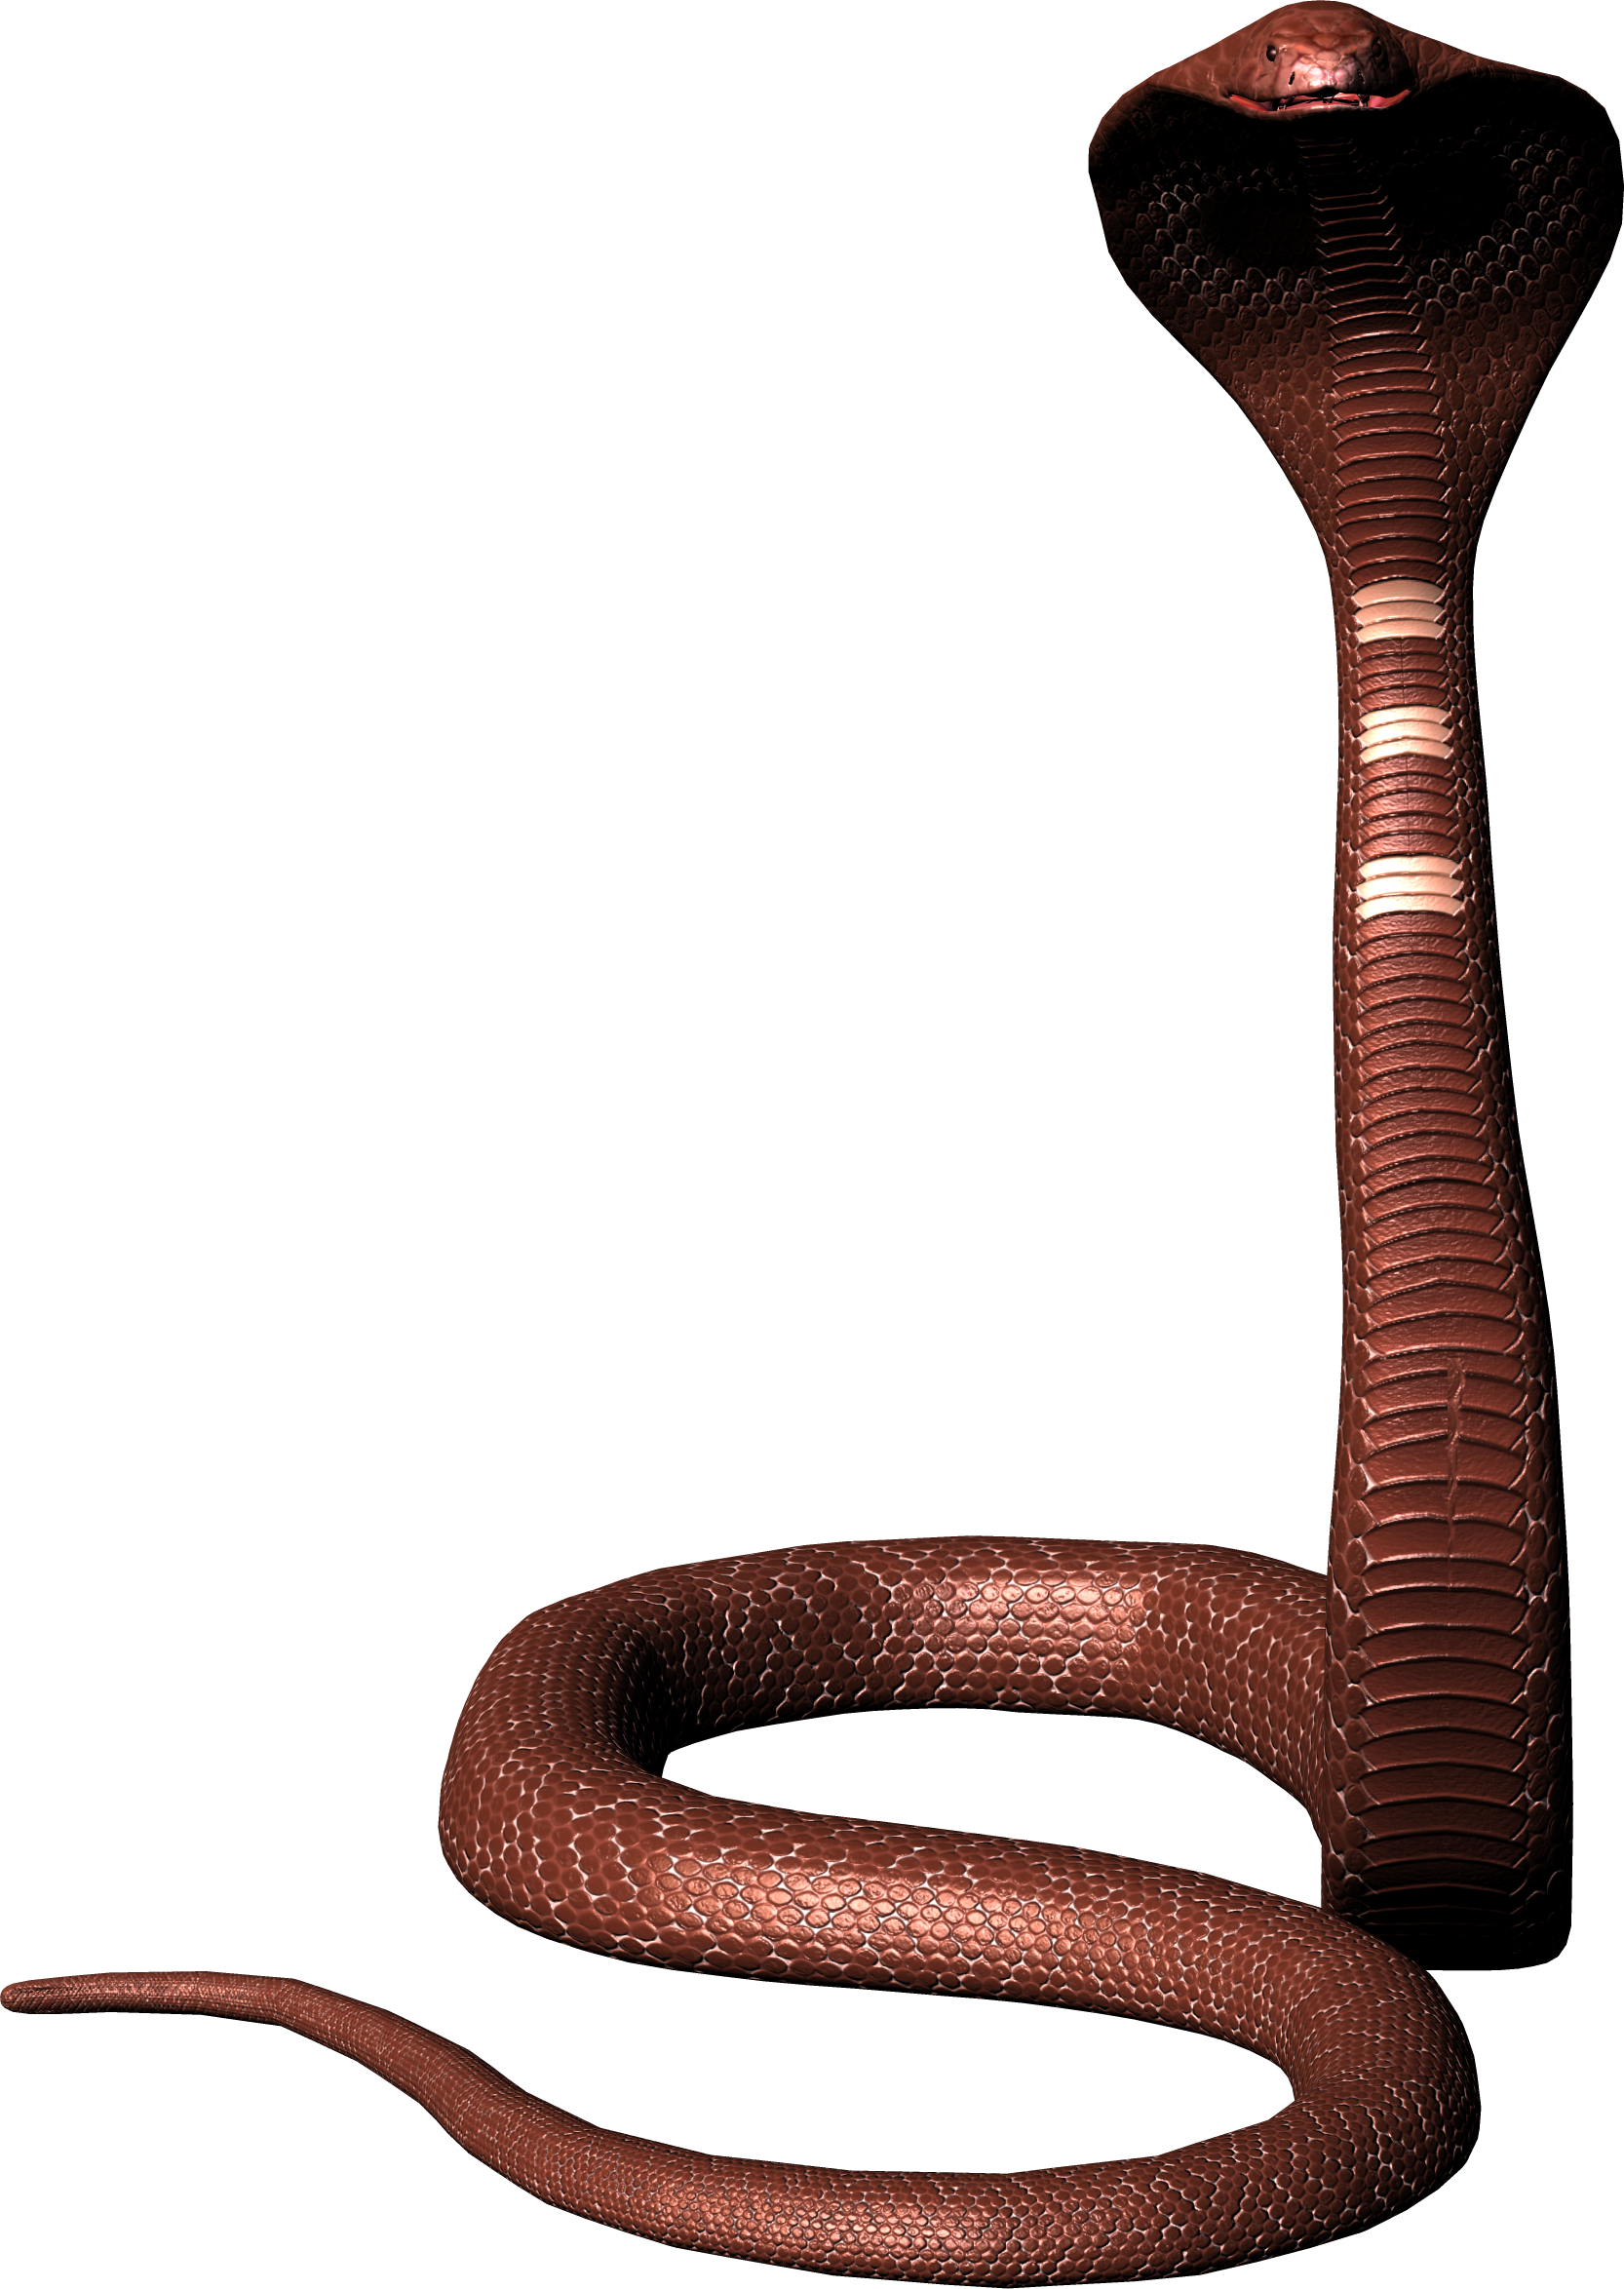 Snake png image free. Cobra clipart realistic